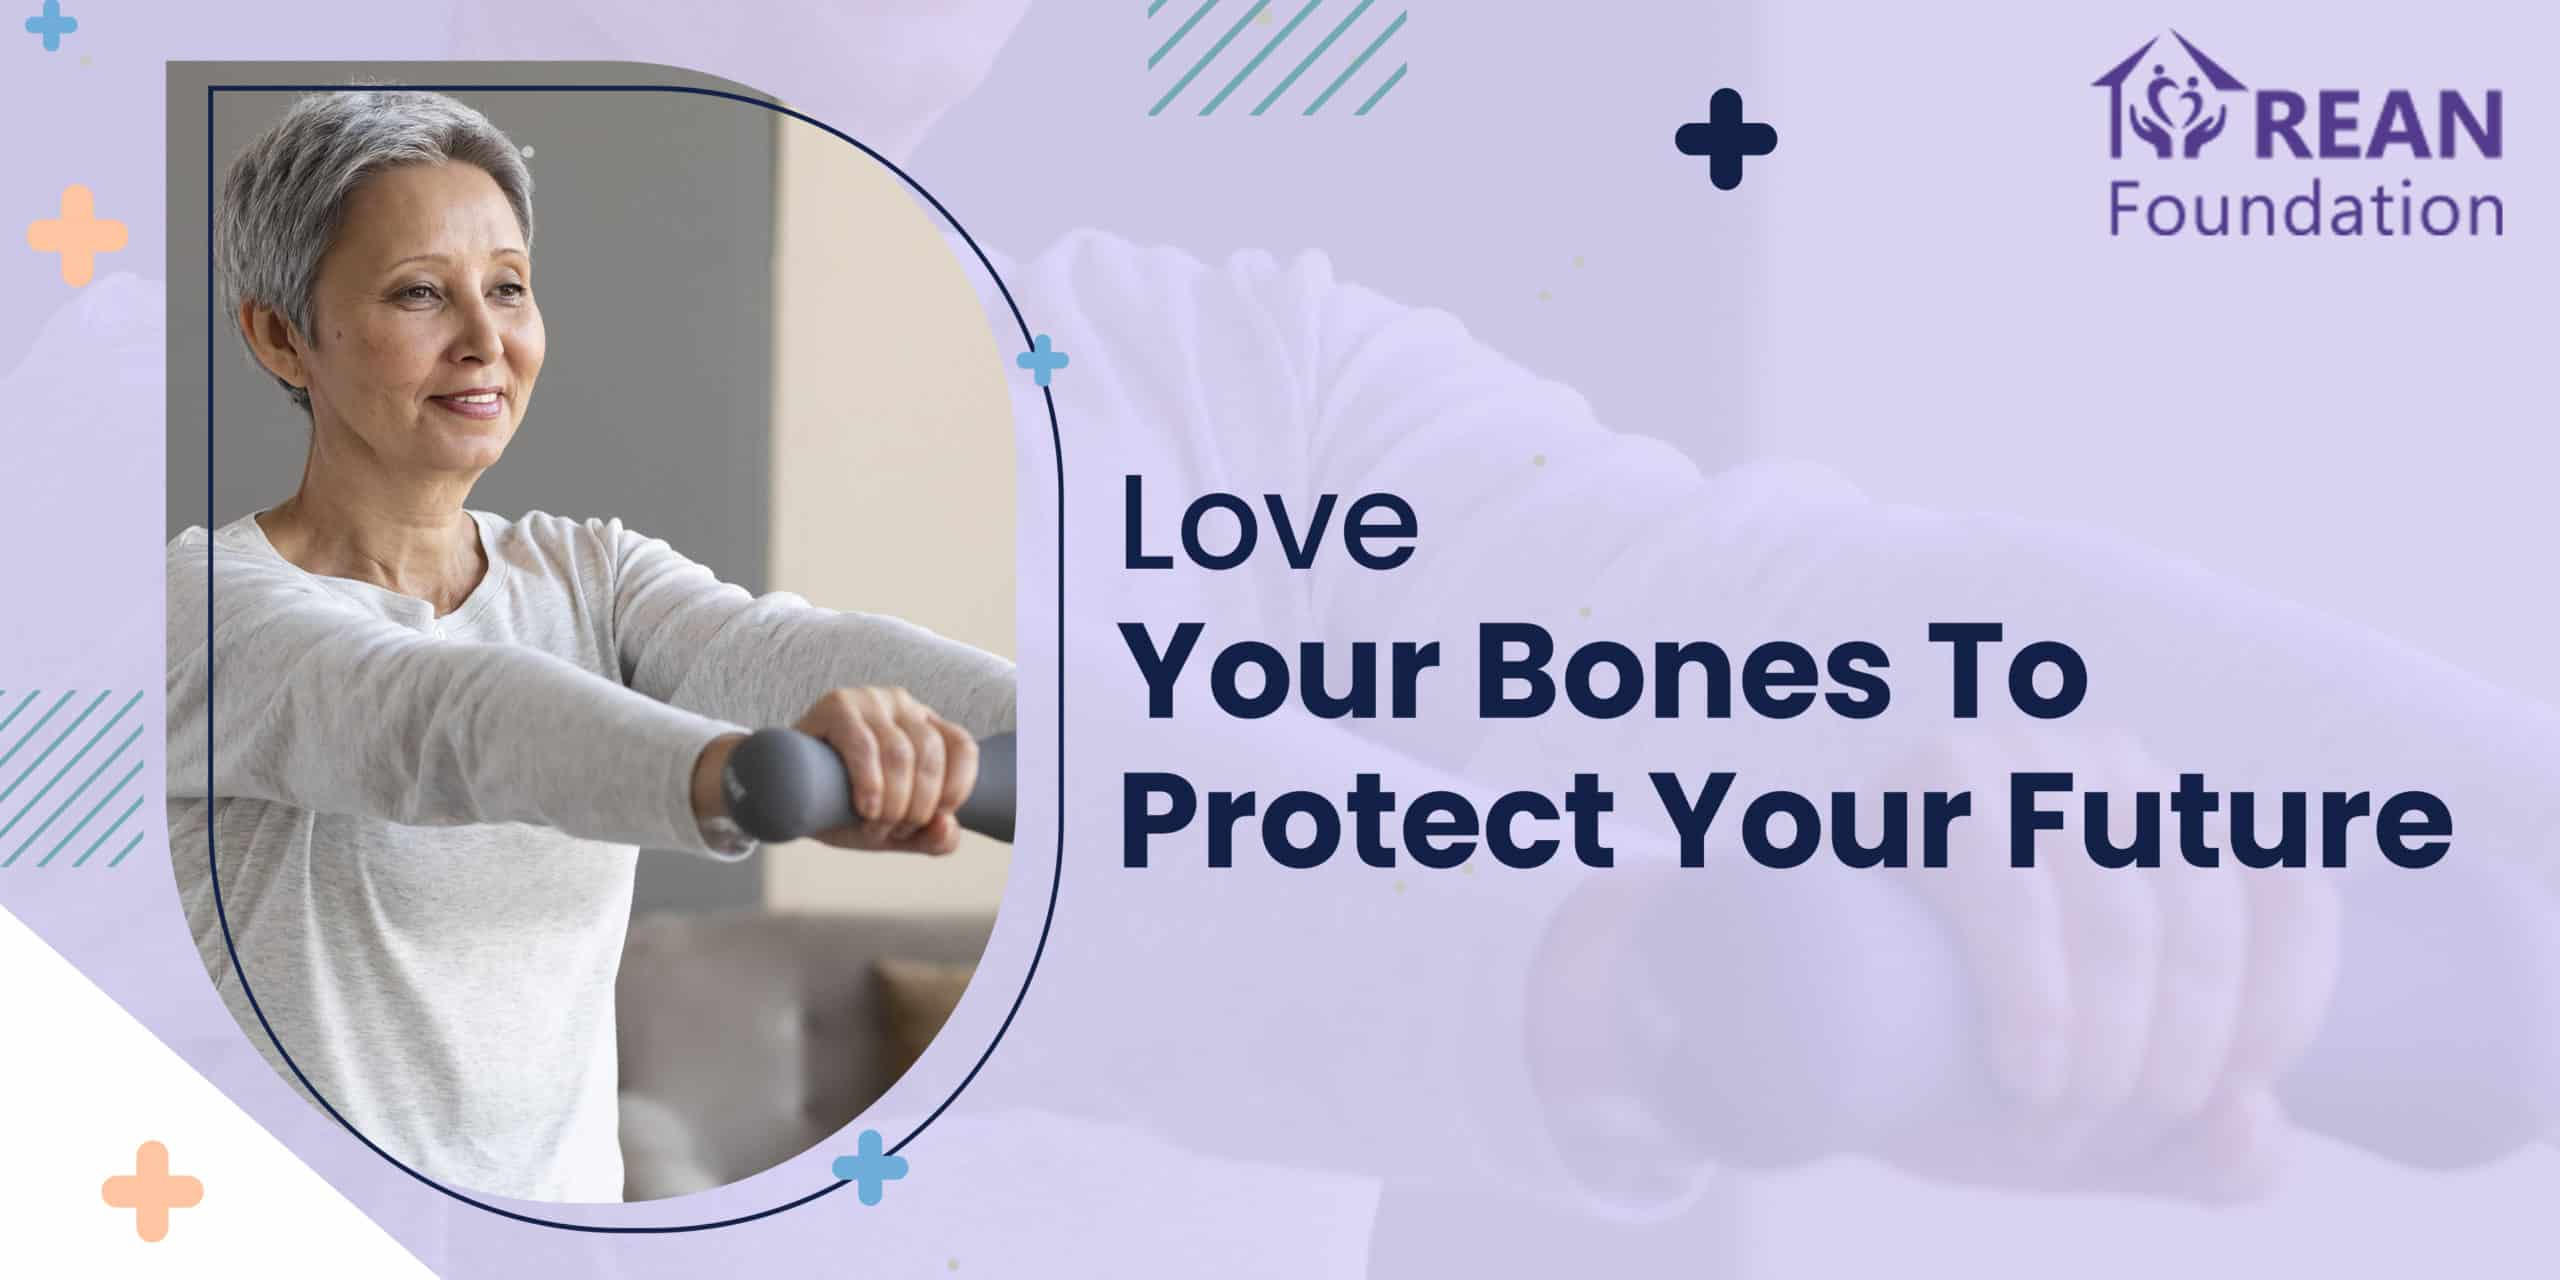 An old woman with a smiling face doing bone strengthening exercises